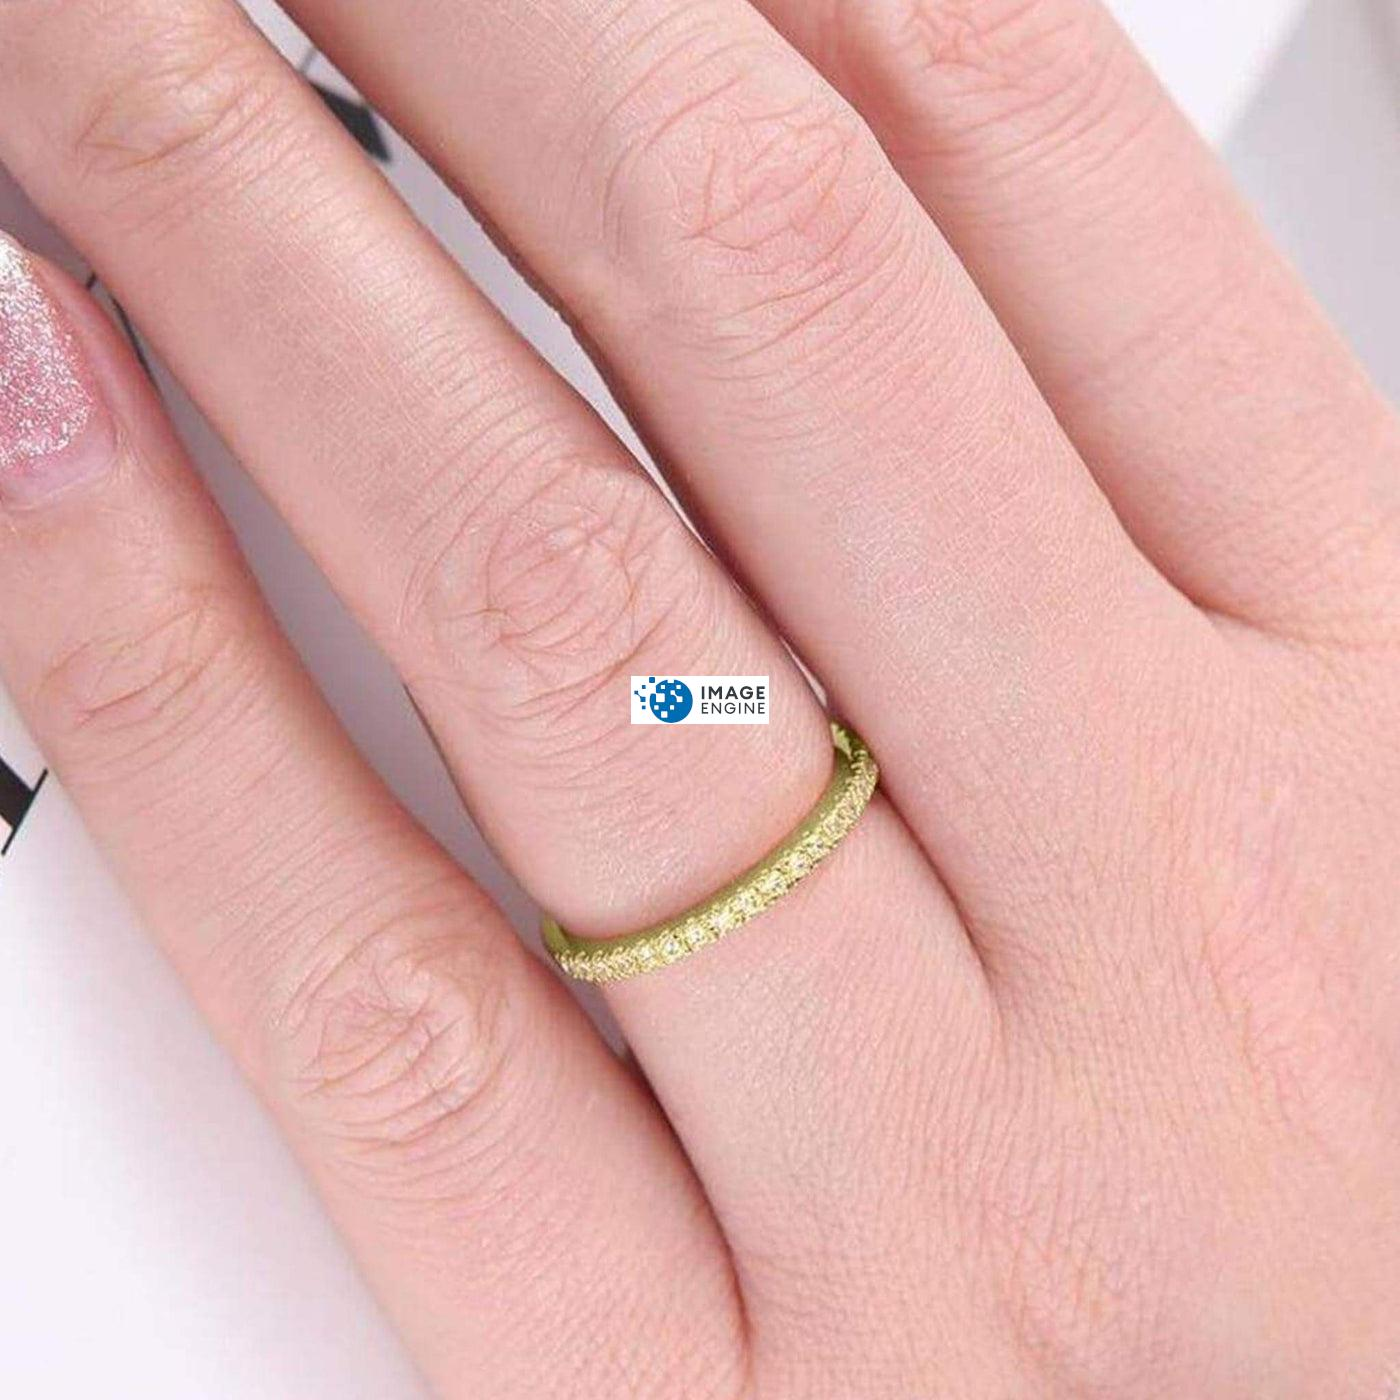 Brianna Bezel Ring - Wearing on Ring Finger on Higher Angle View - 18K Yellow Gold Vermeil